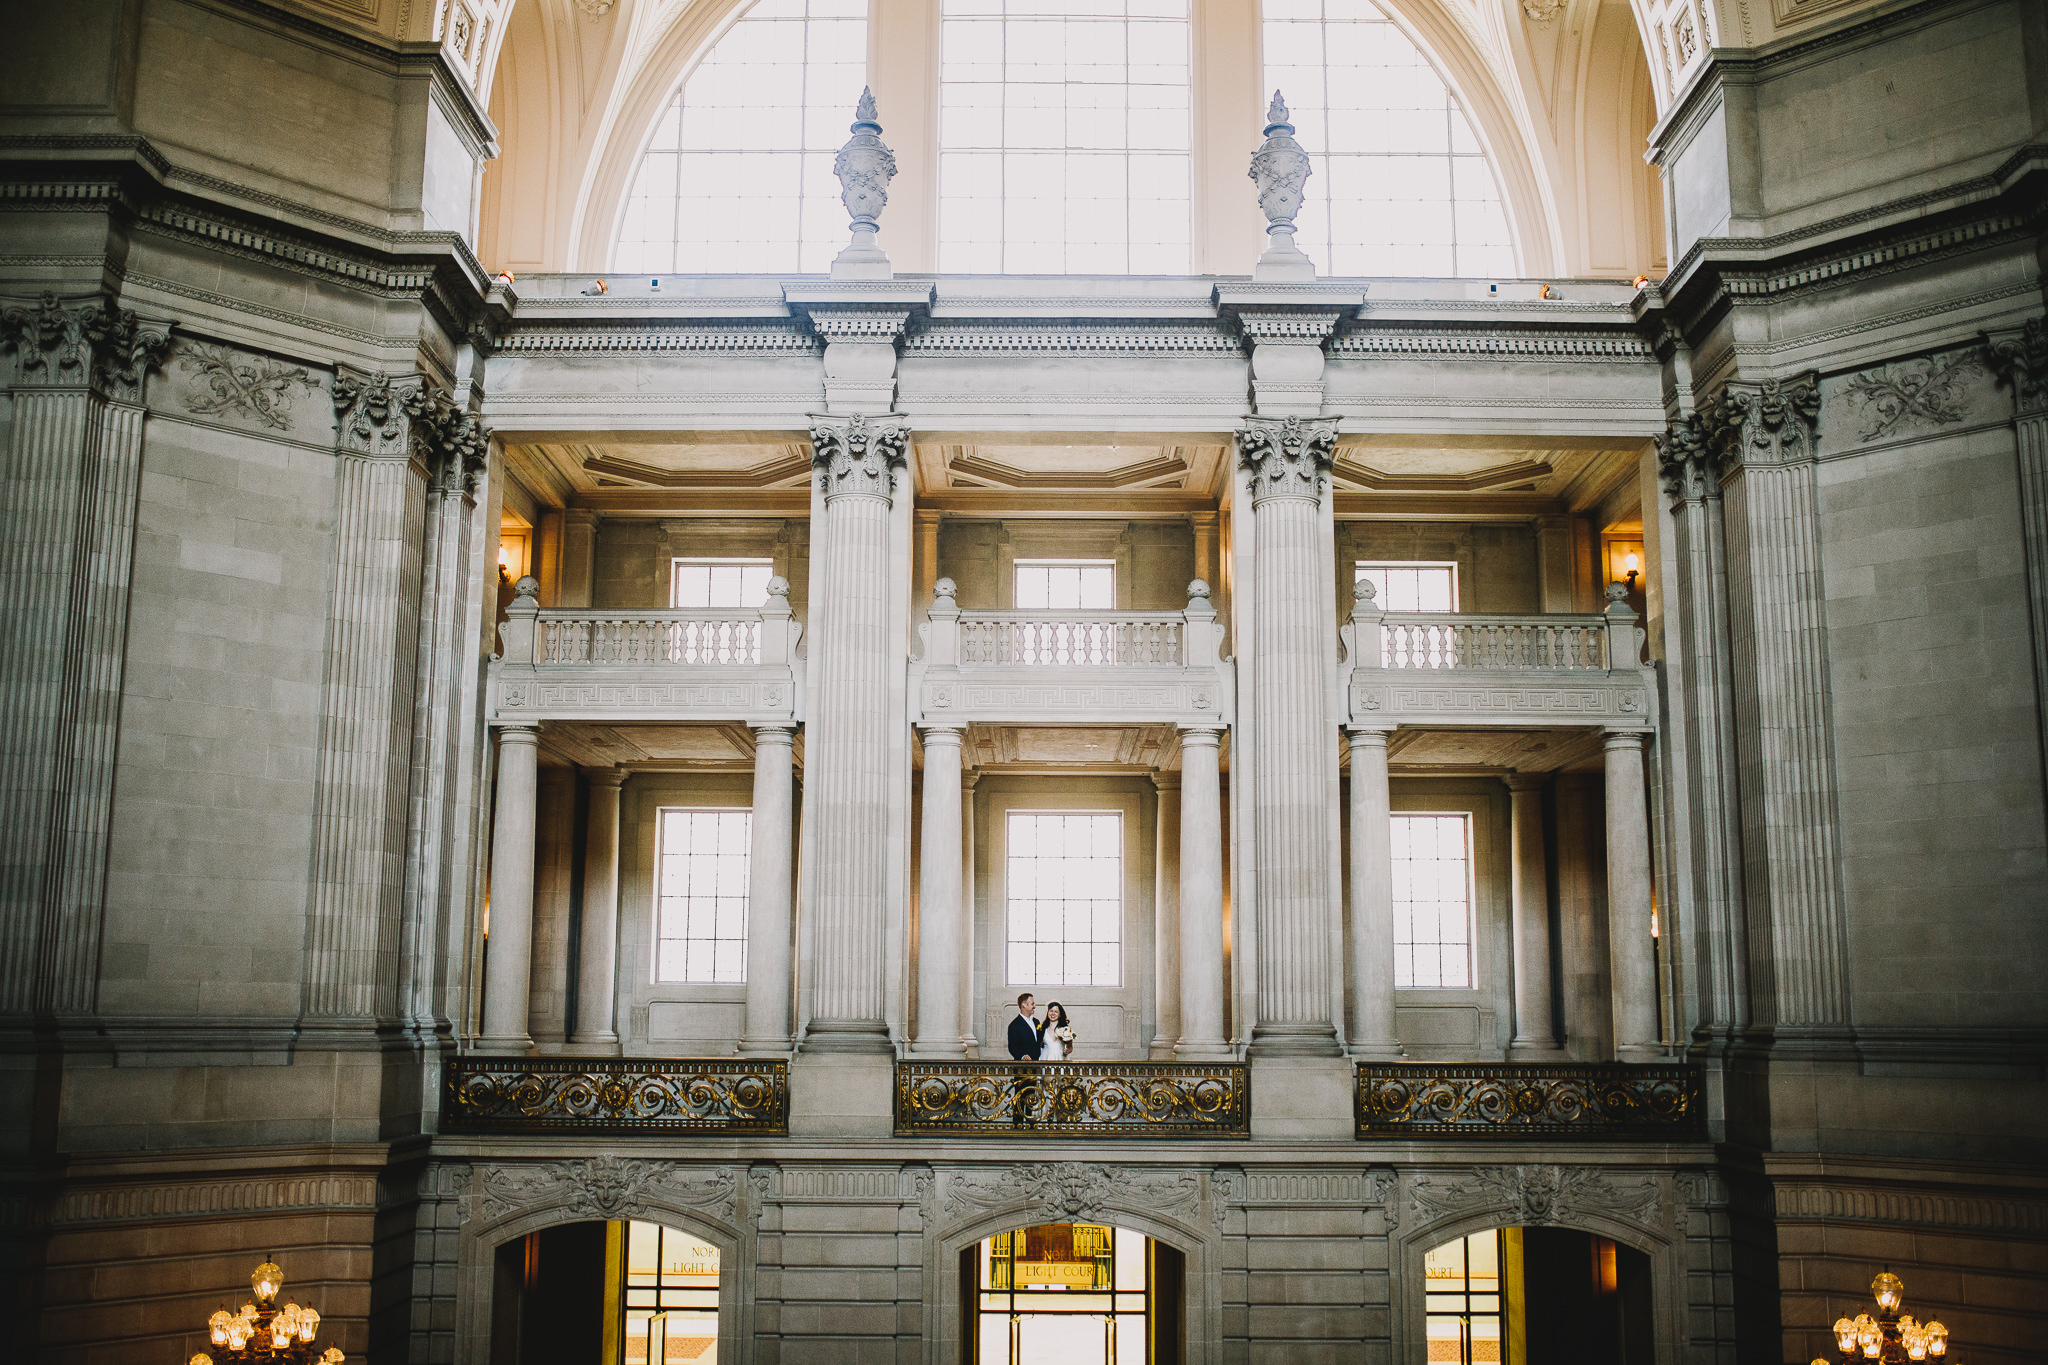 Archer Inspired Photography SF City Hall Elopement Wedding Lifestyle Documentary Affordable Photographer-170.jpg